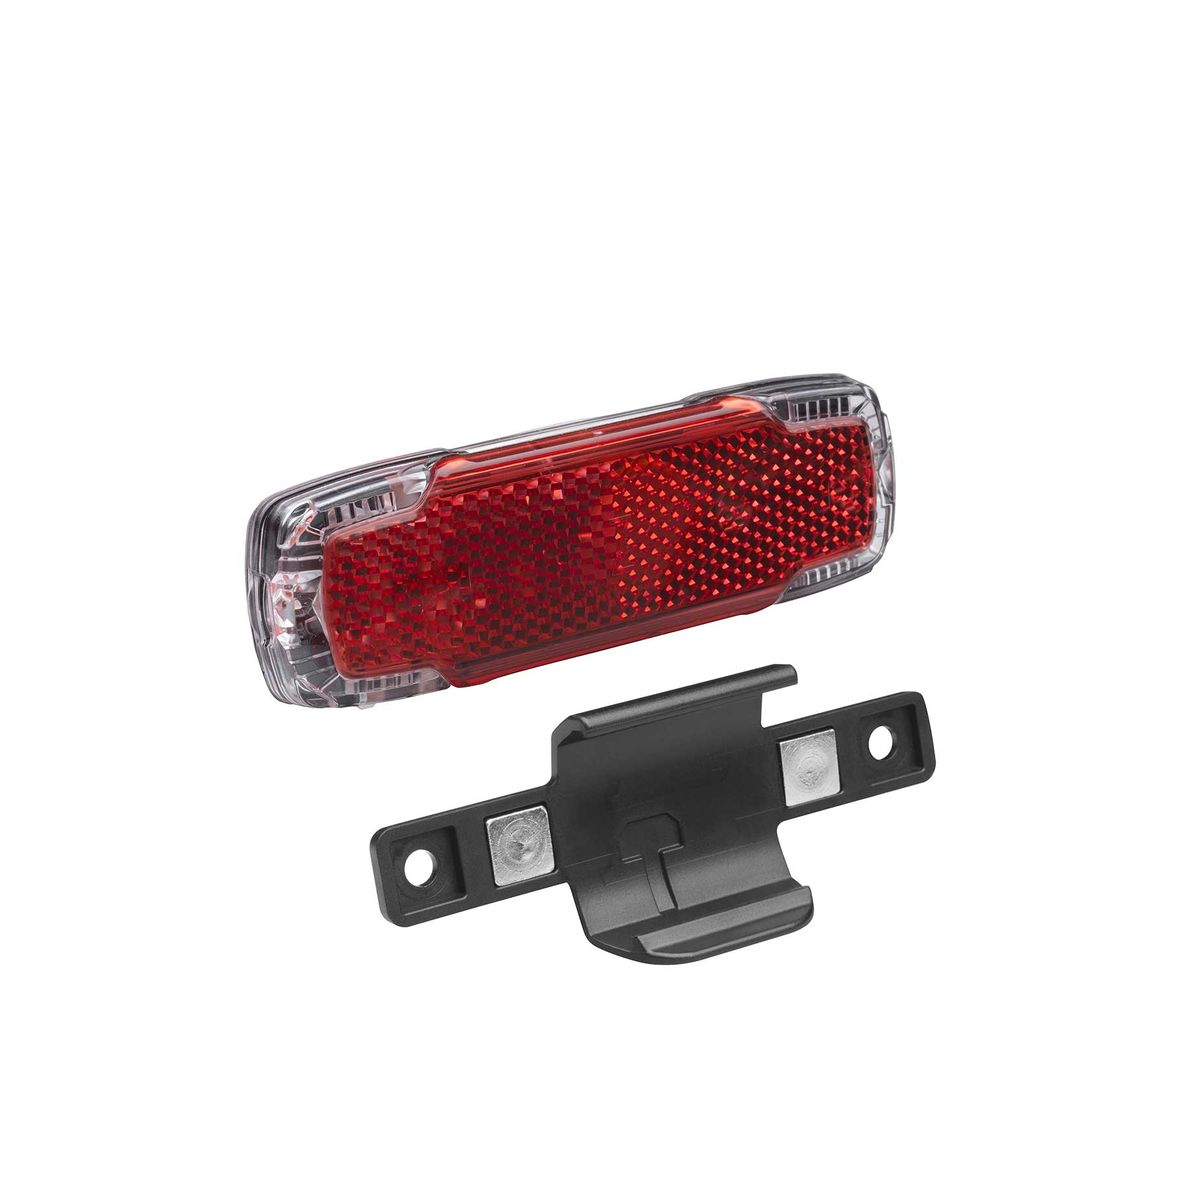 Müller Toplight 2C Bicycle Dynamo Rear Tail Light Red 326ASK-02 Busch